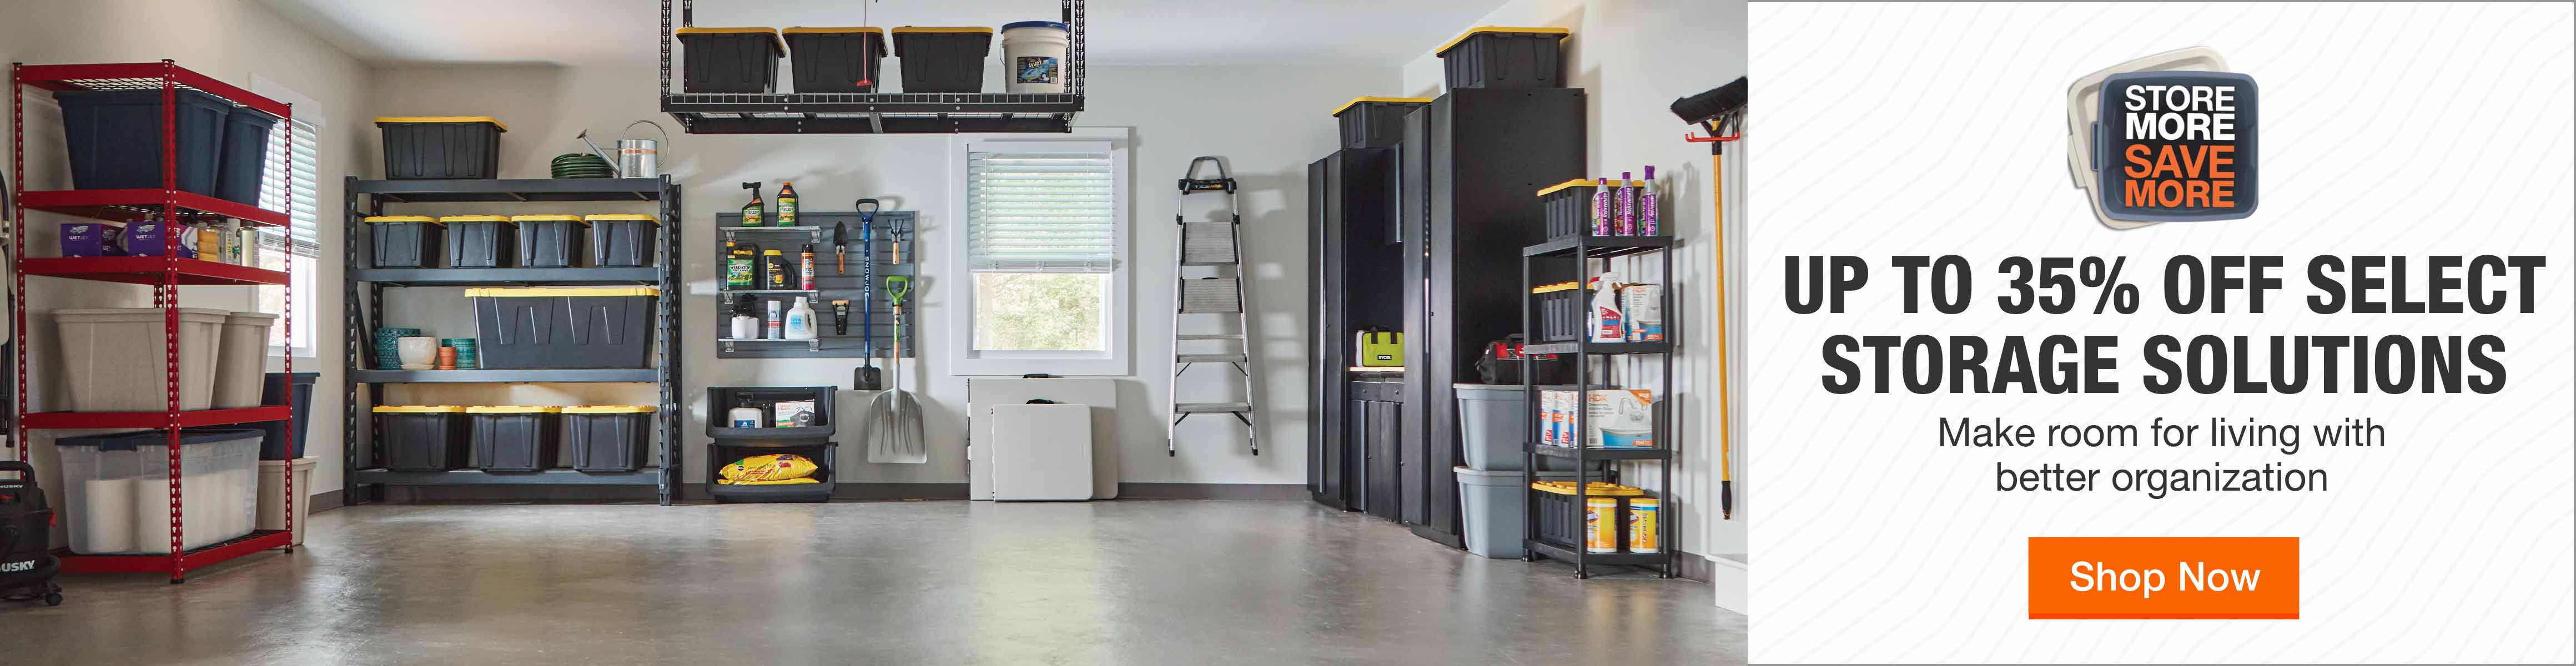 Storage & Organization - Up to 35% off Select Storage Solutions